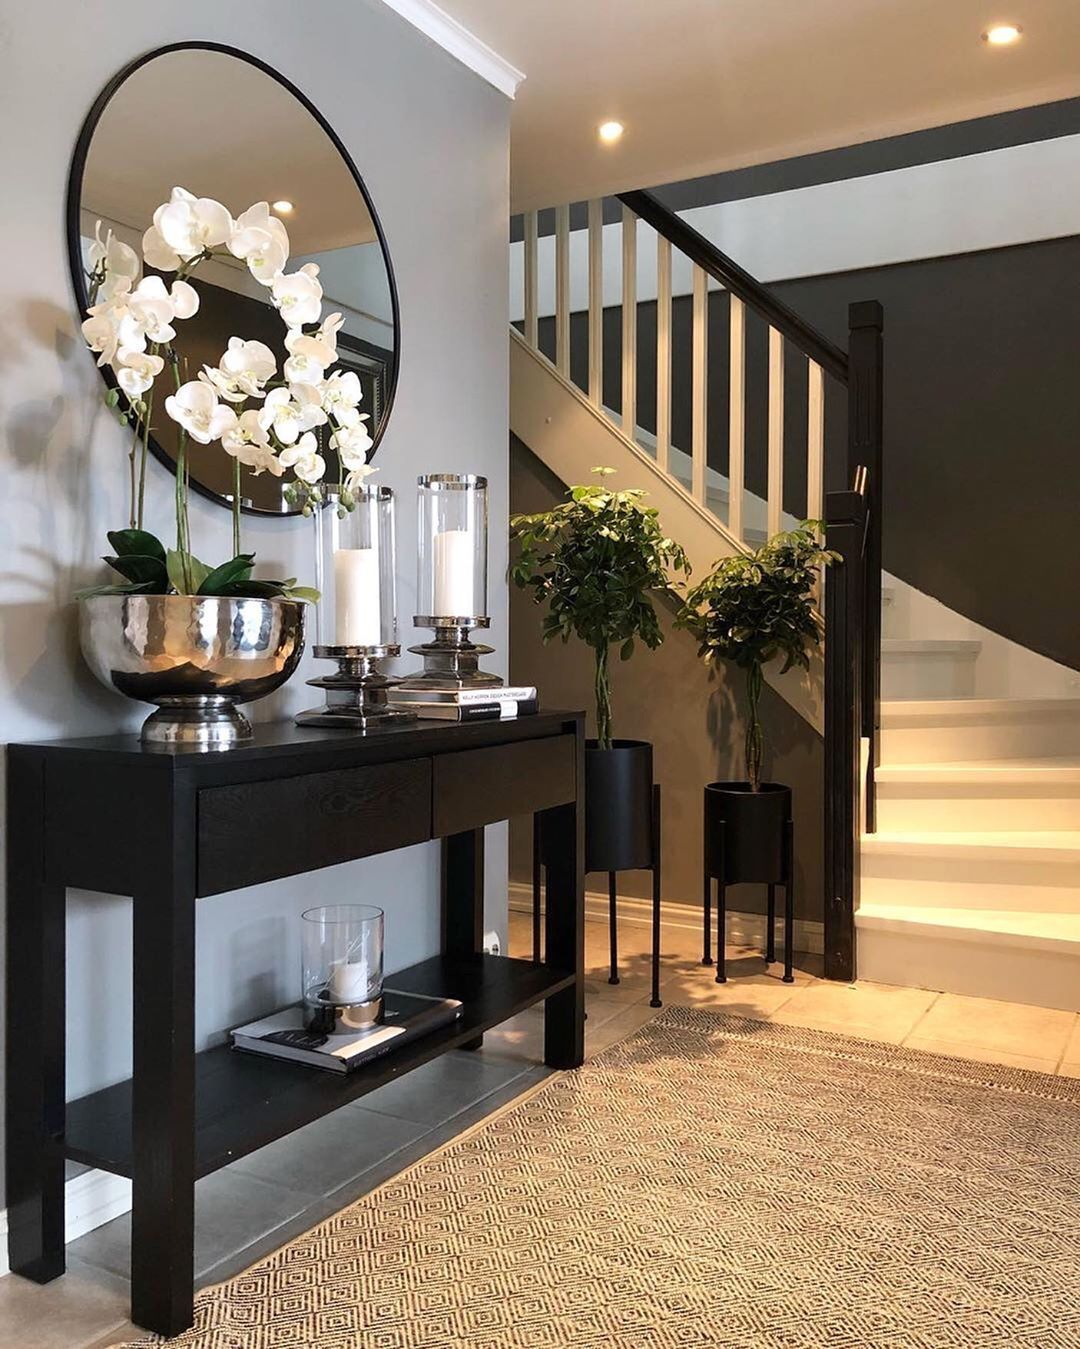 "Home Design & Decor on Instagram: ""✨ TGIF, Happy Friday✨ Here's a little hallway inspiration by @hege_maries_hjem.⁣⁣⁣⁣ ⁣⁣ ⁣⁣⁣⁣⁣ Your hallway is the first thing you always see…"" #entrywayideas"